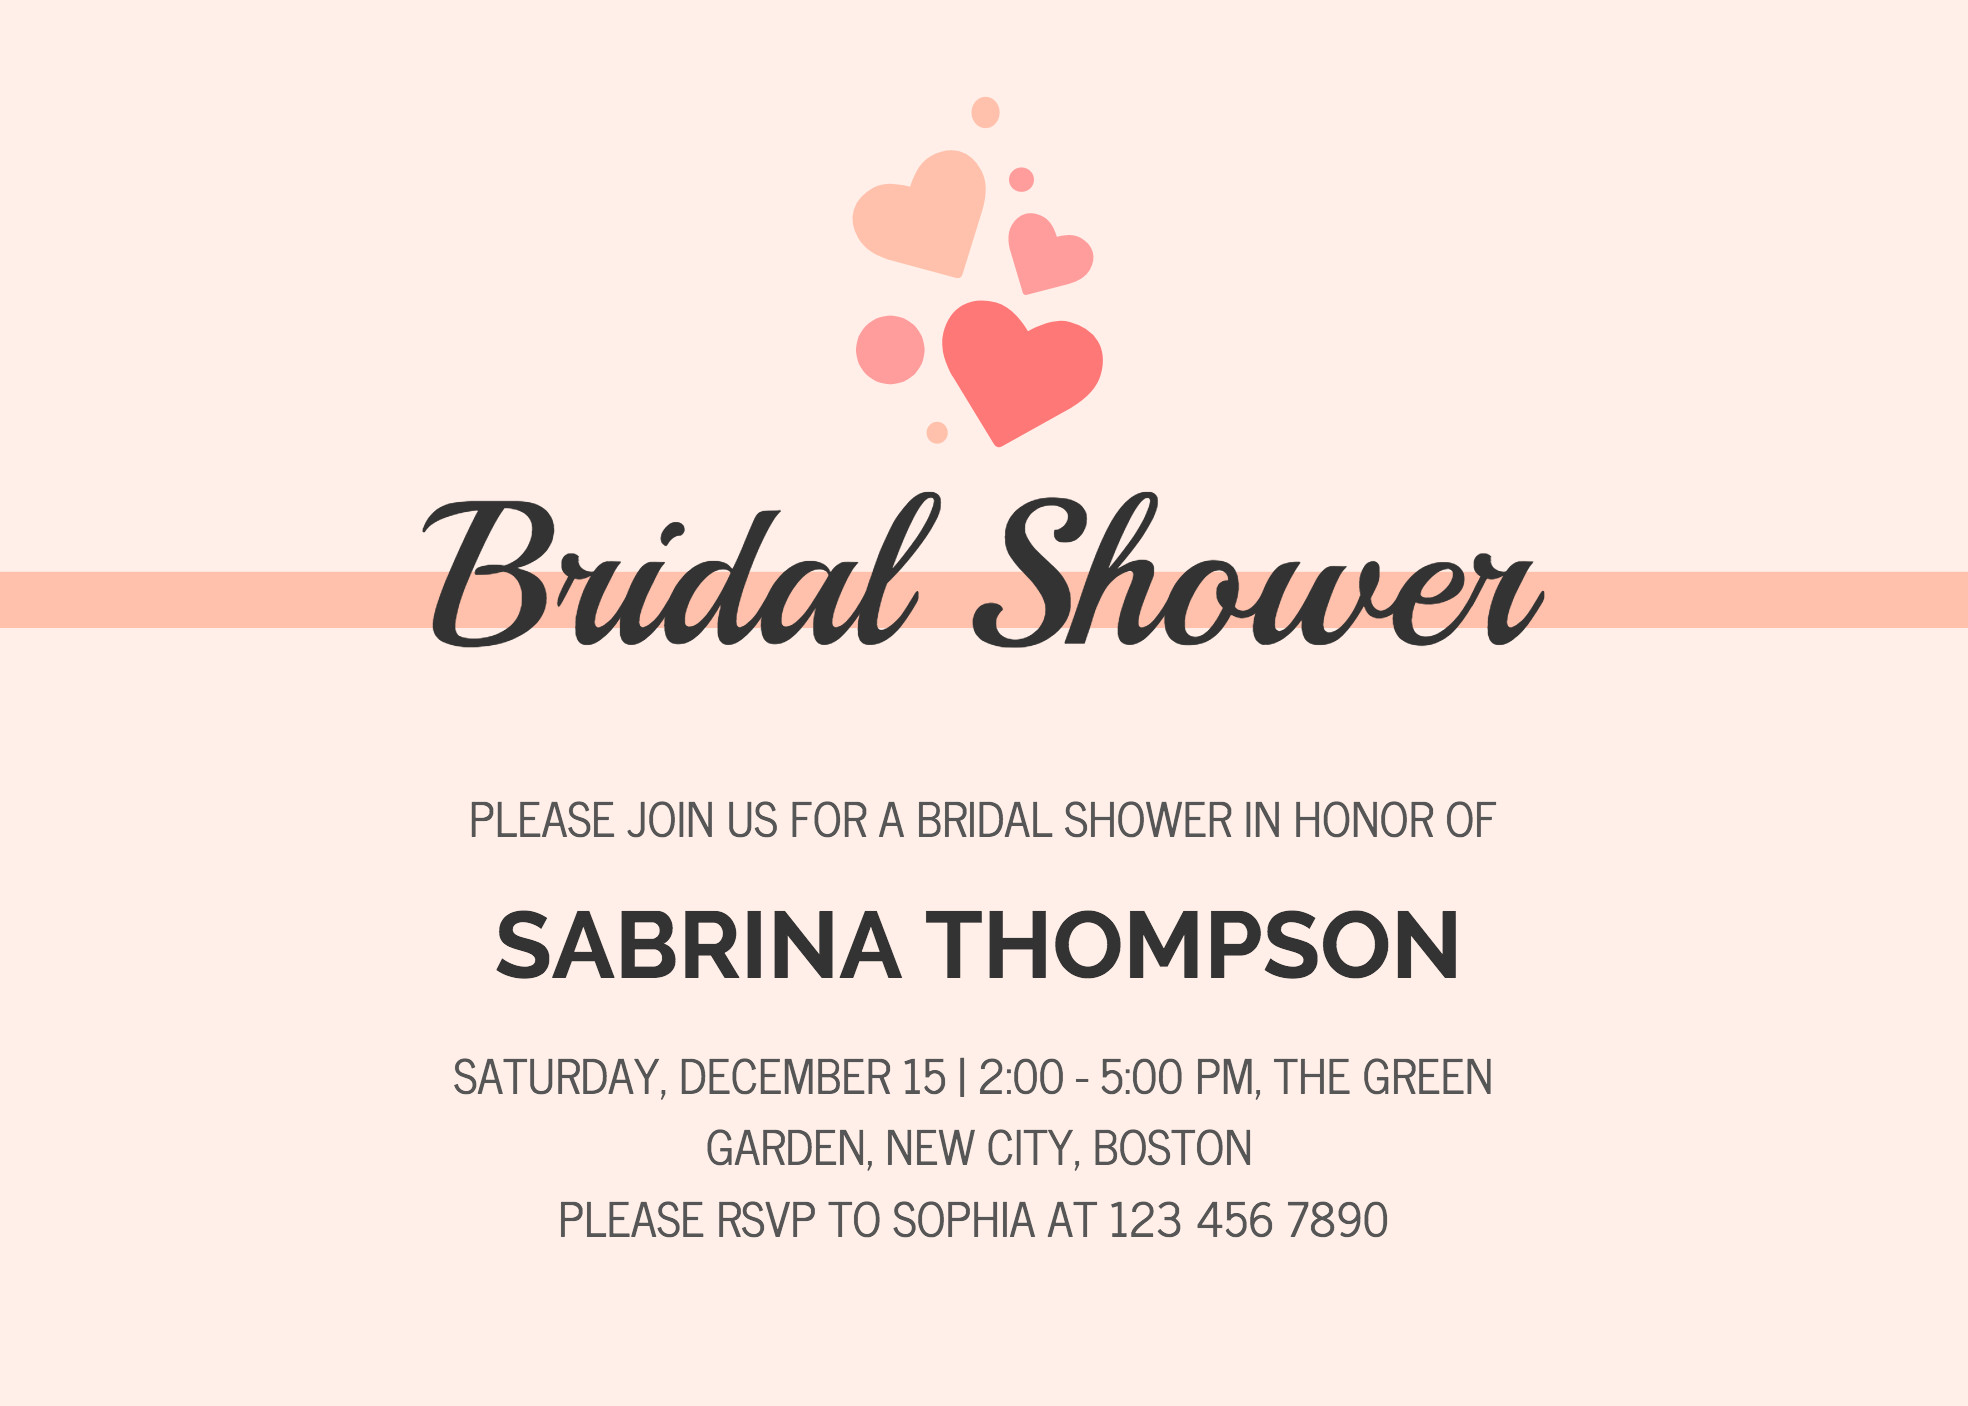 Wedding Shower Invite Template 19 Diy Bridal Shower and Wedding Invitation Templates